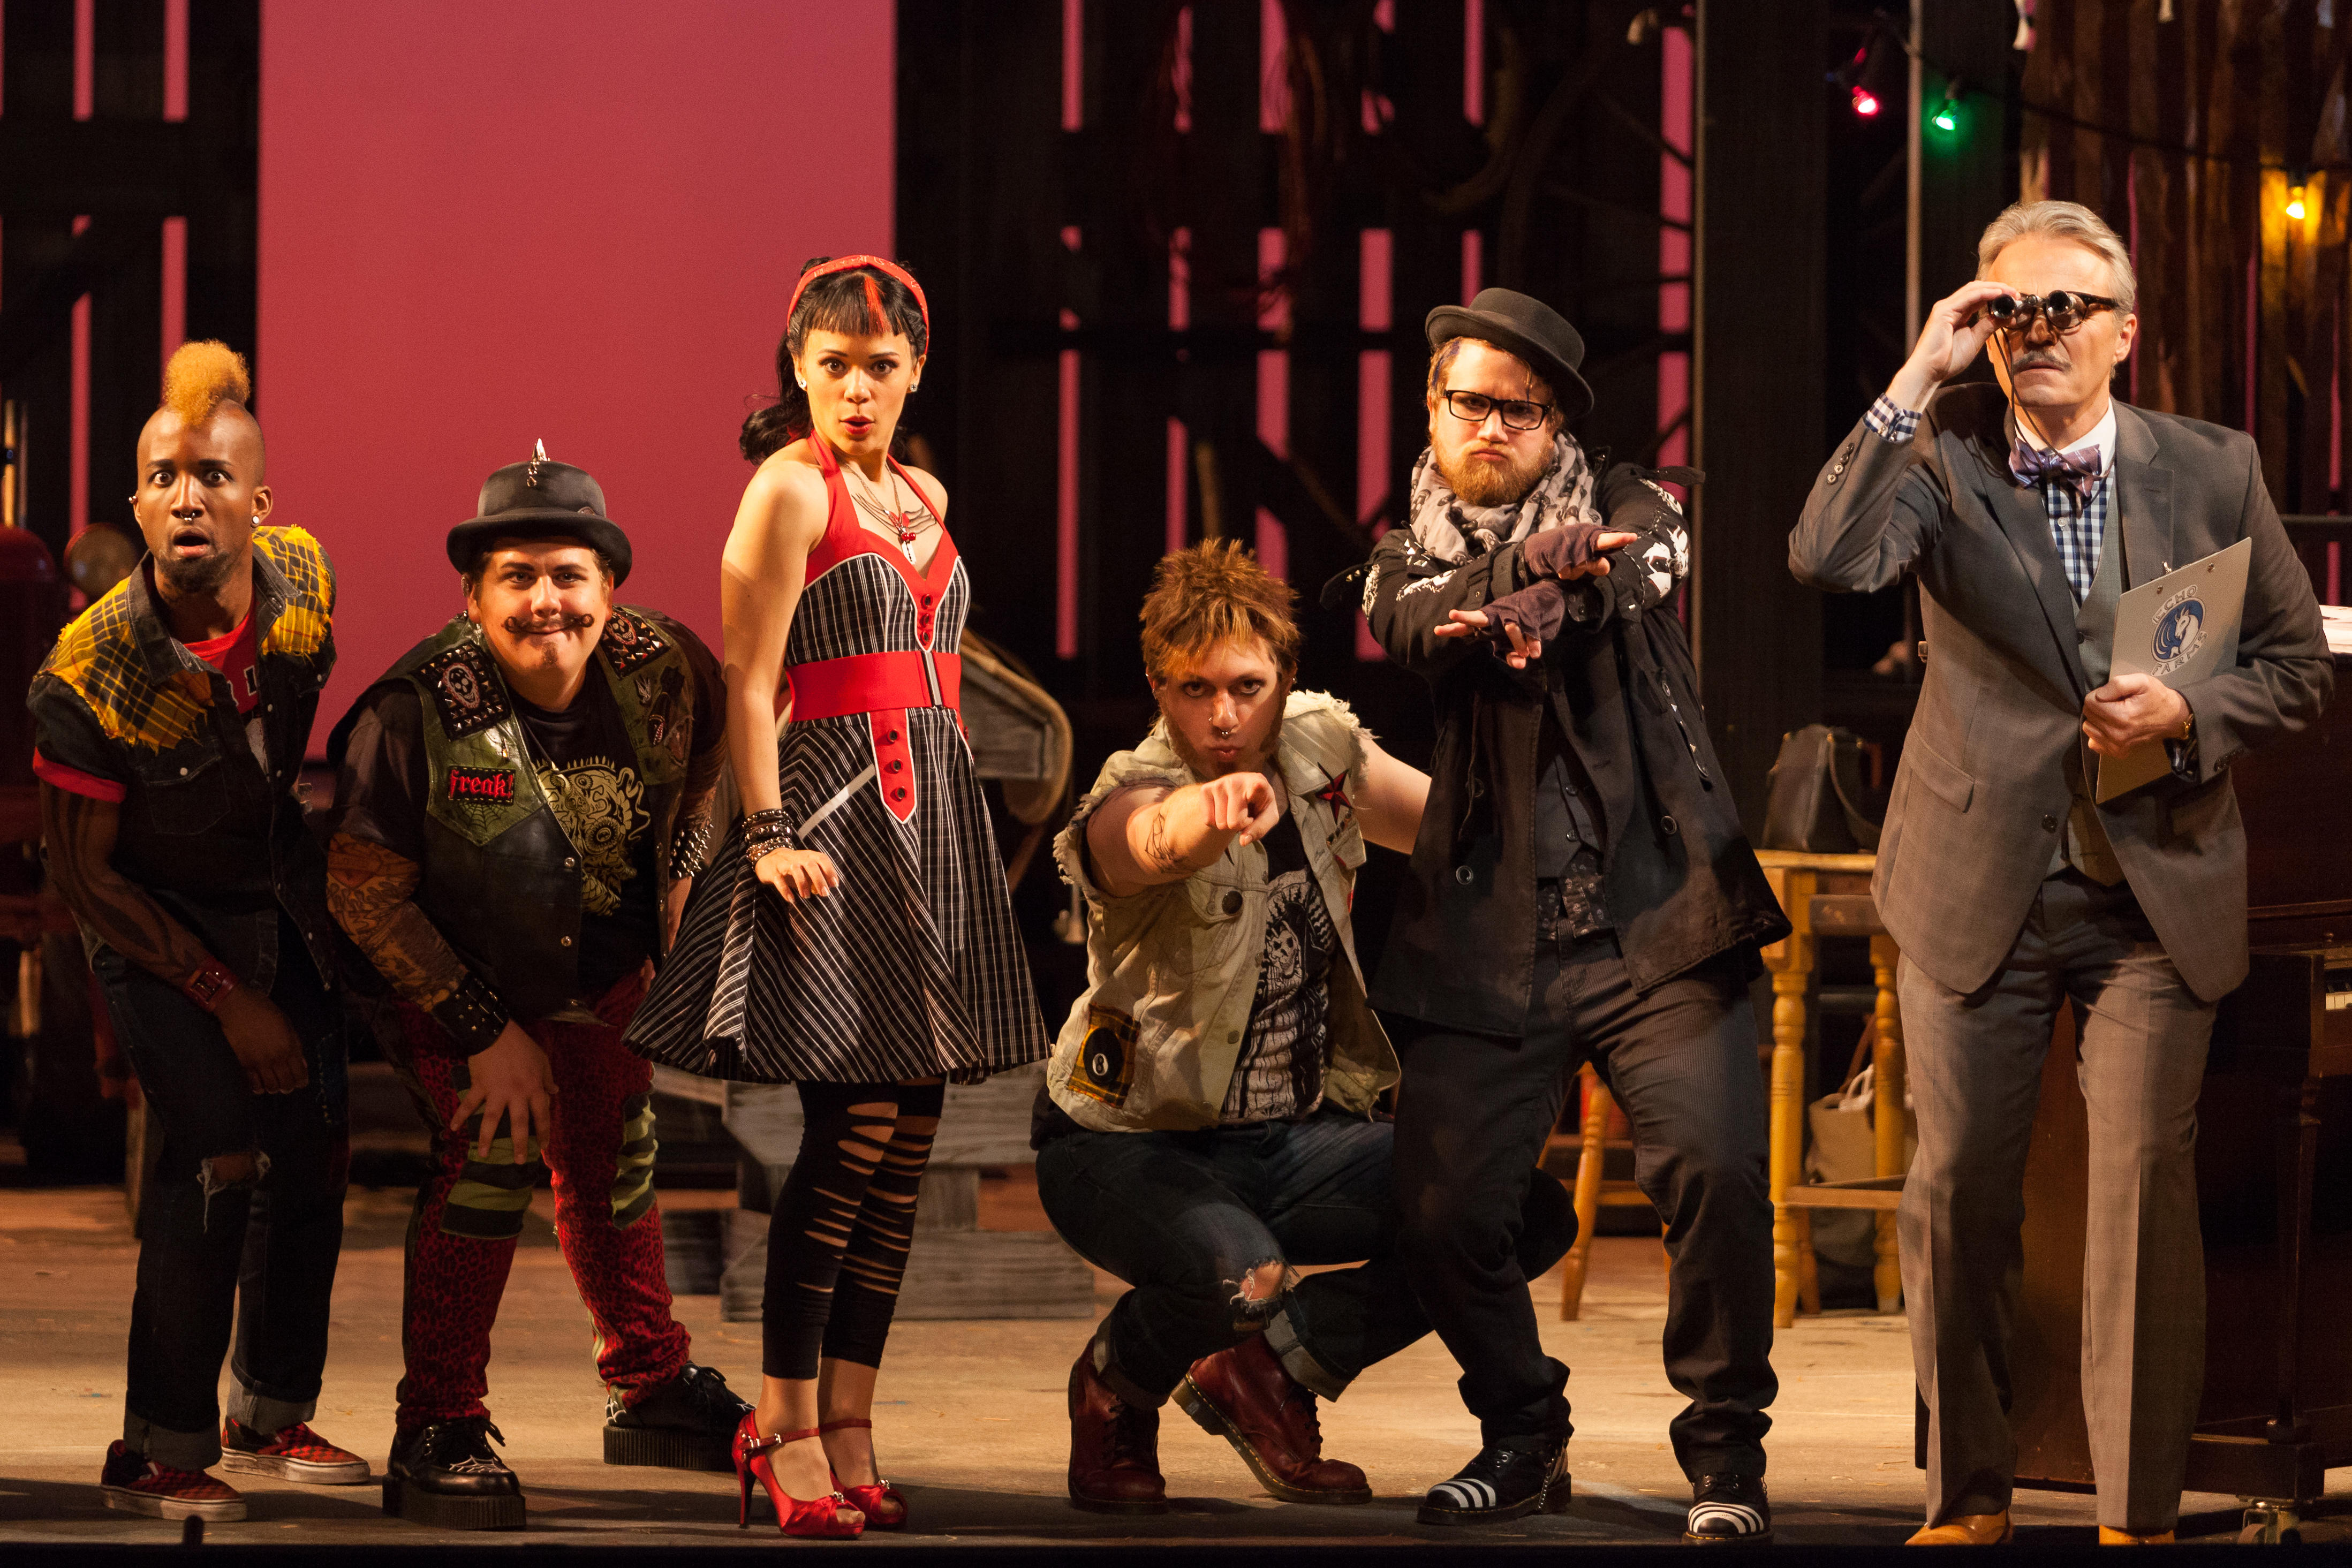 """L to R: Carlton Ford as Harlequin, Brian Ross Yeakley as Brighella, Rachele Gilmore as Zerbinetta, Gerard Michael D'Emilio as Truffaldino, Andrew Penning as Scaramuccio and Wynn Harmon as Manager of the Estate in The Glimmerglass Festival's 2014 production of Strauss' """"Ariadne in Naxos."""" Photo Karli Cadel/The Glimmerglass Festival."""